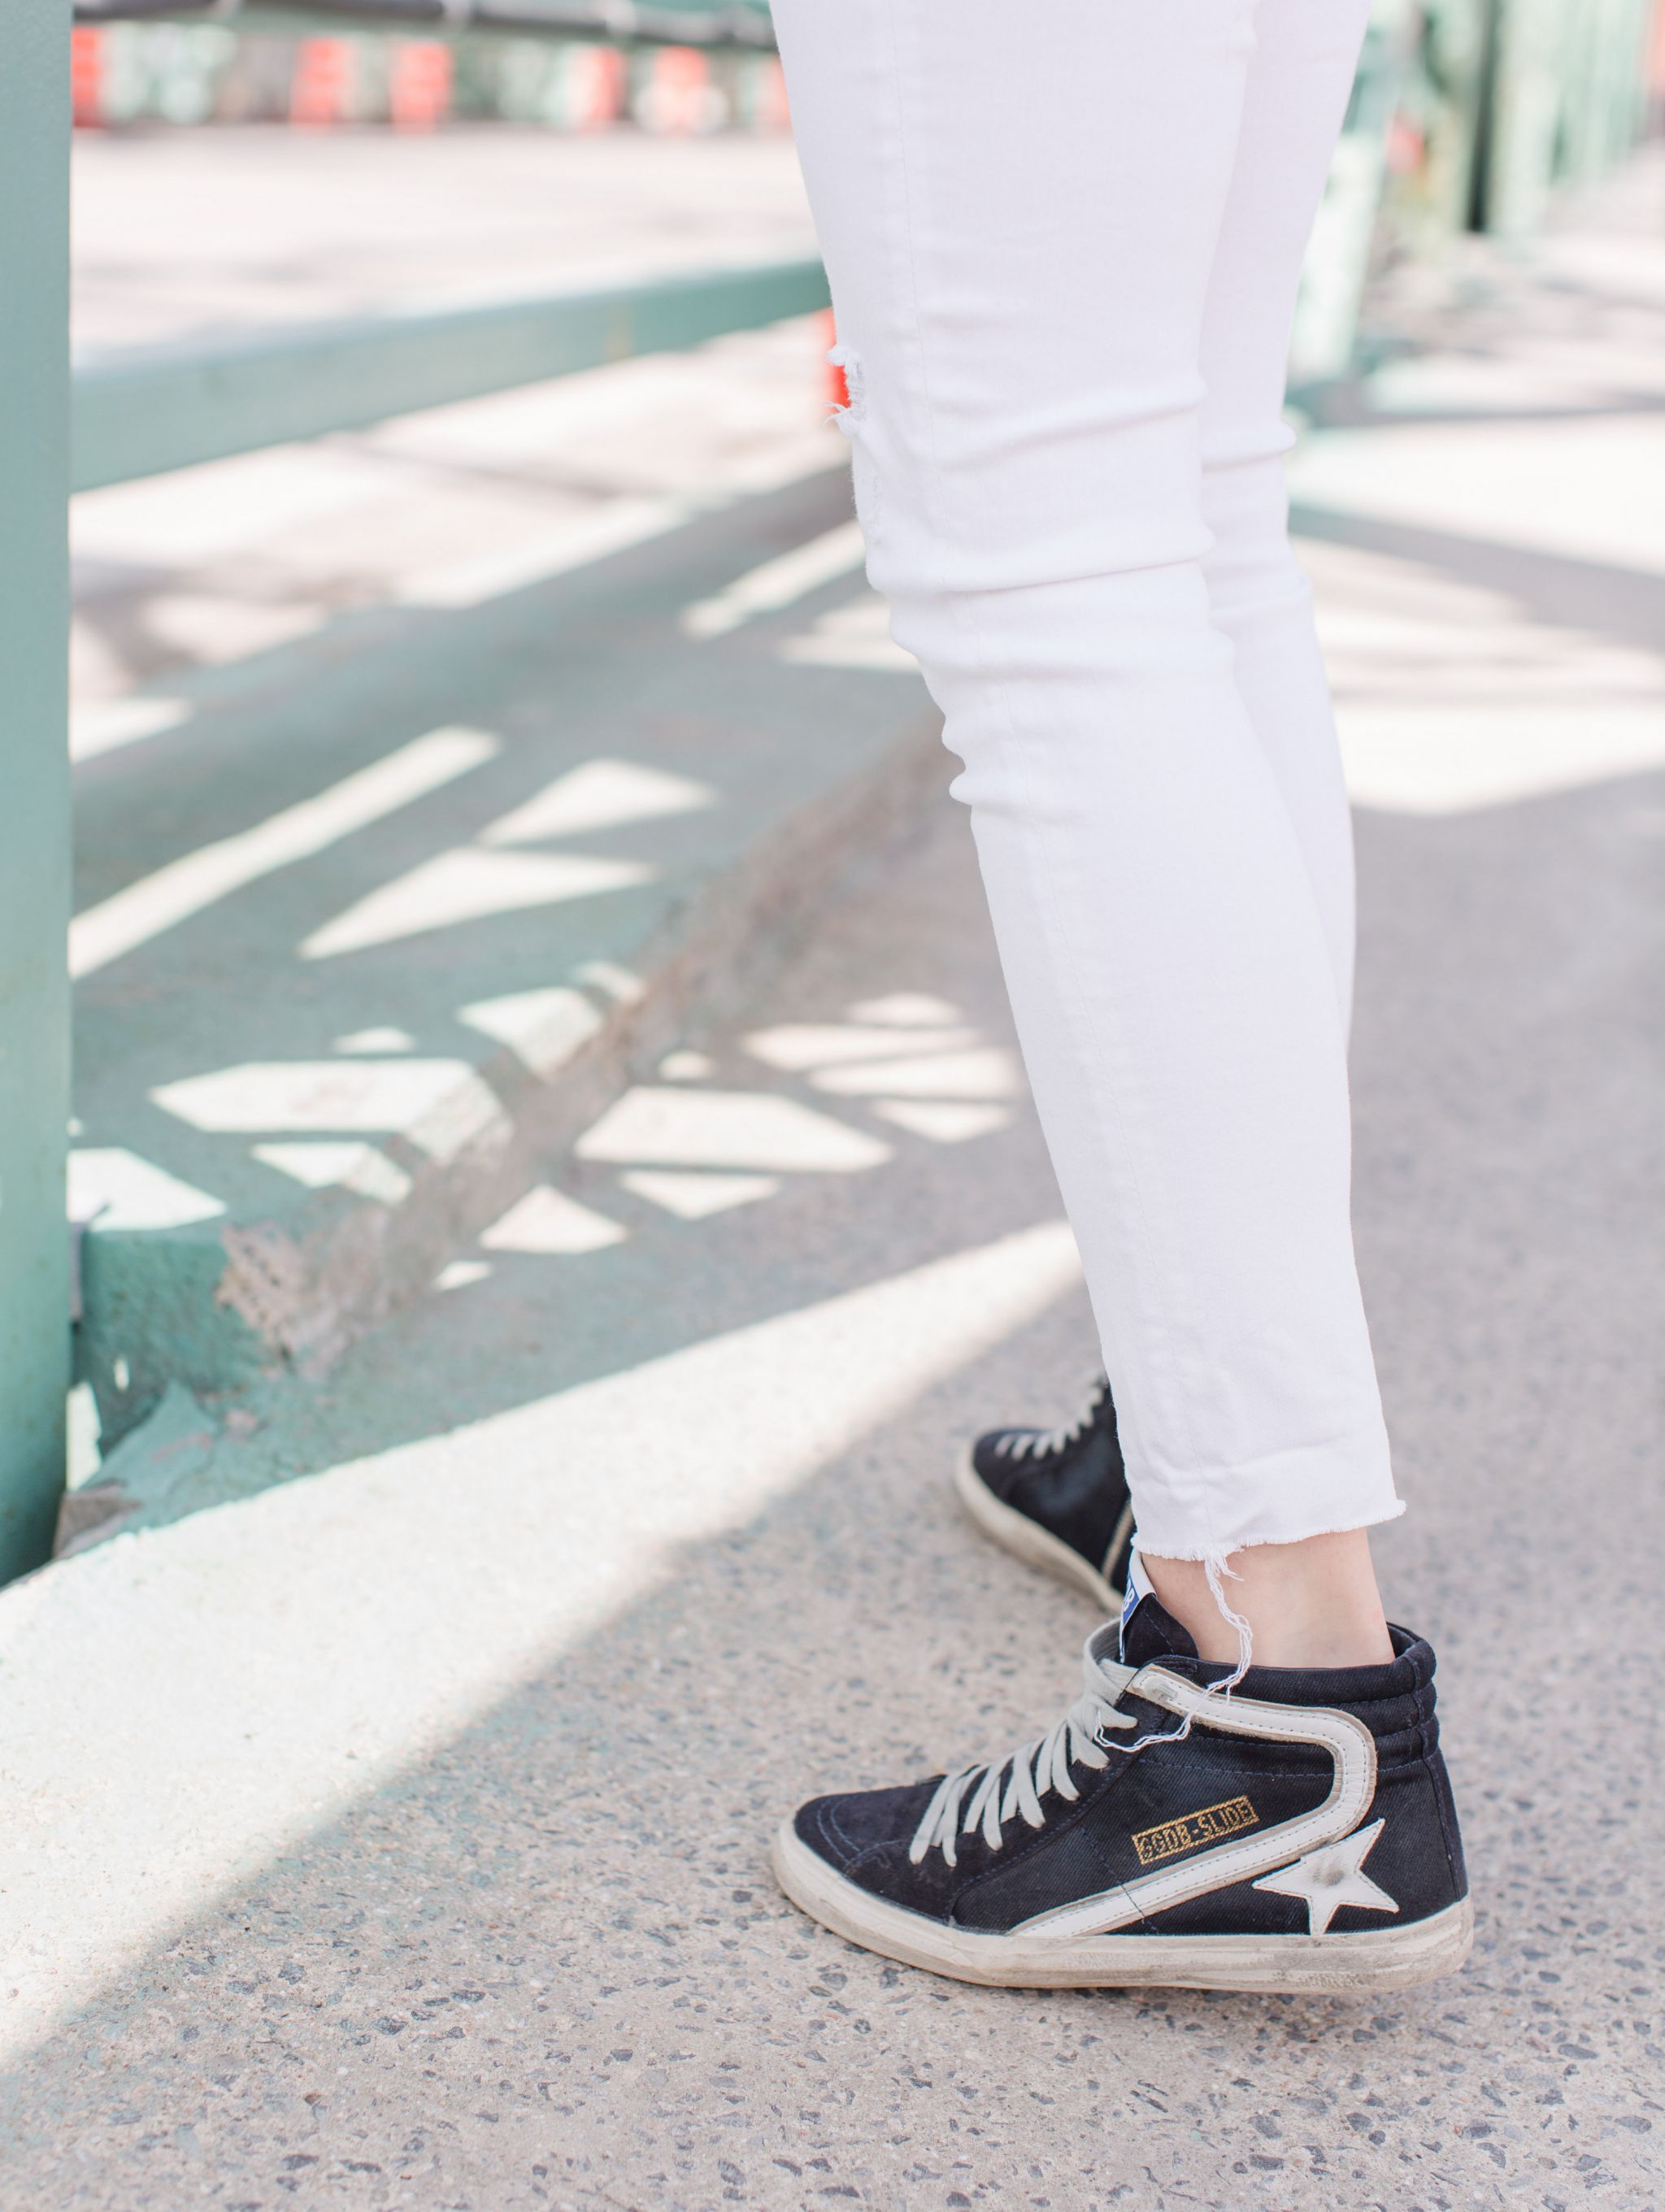 life-with-aco-cool-sneakers-golden-goose-slide-shoes-how-to-wear-fashion-sneakers.jpg